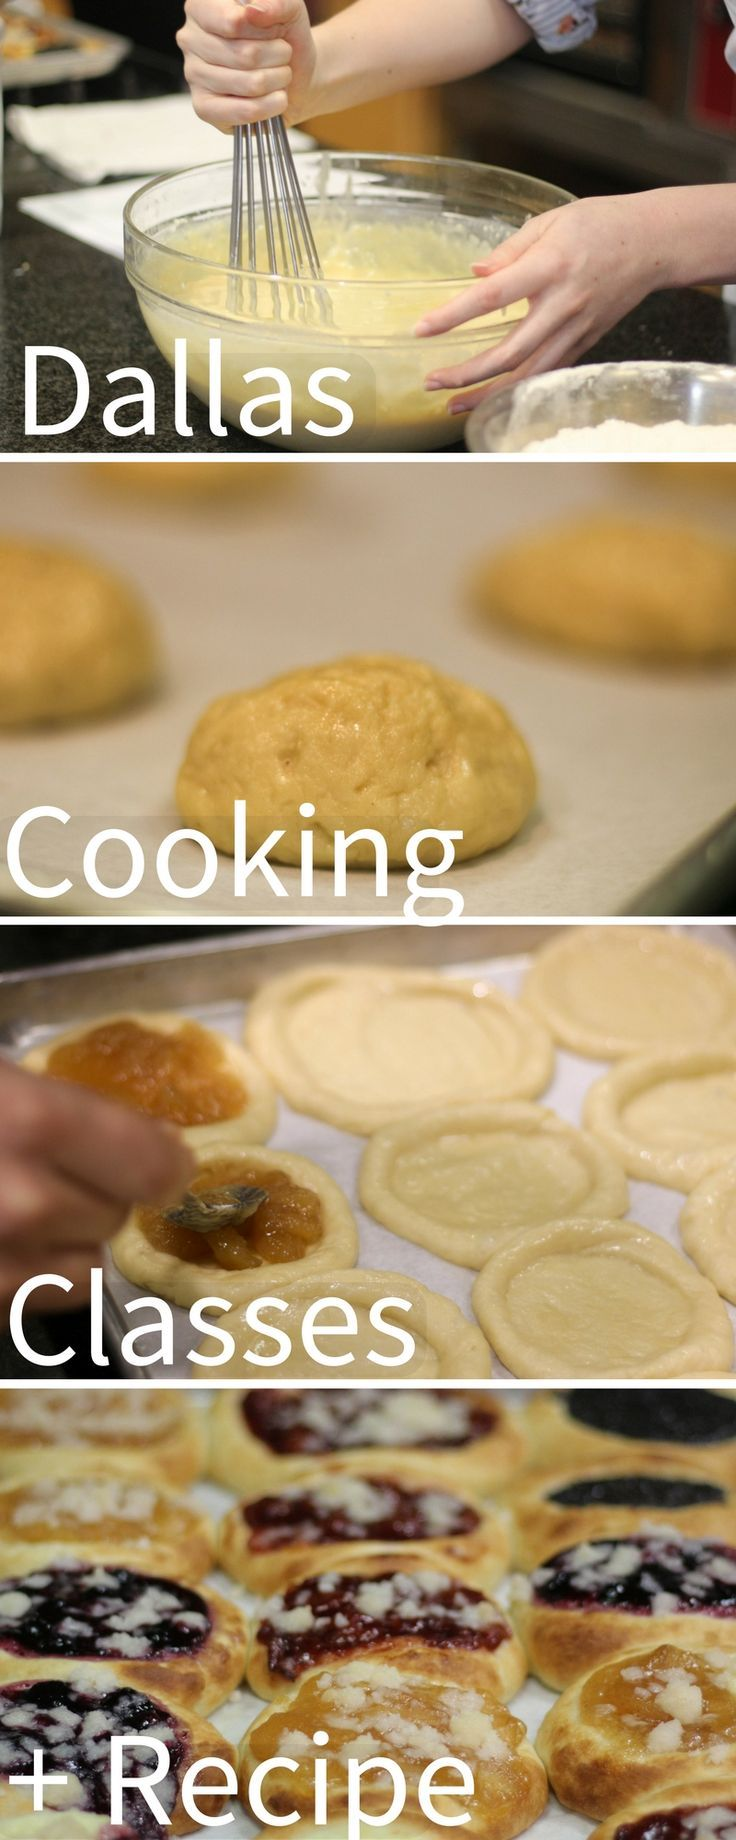 Dallas cooking classes a kolache pastry recipe foodie